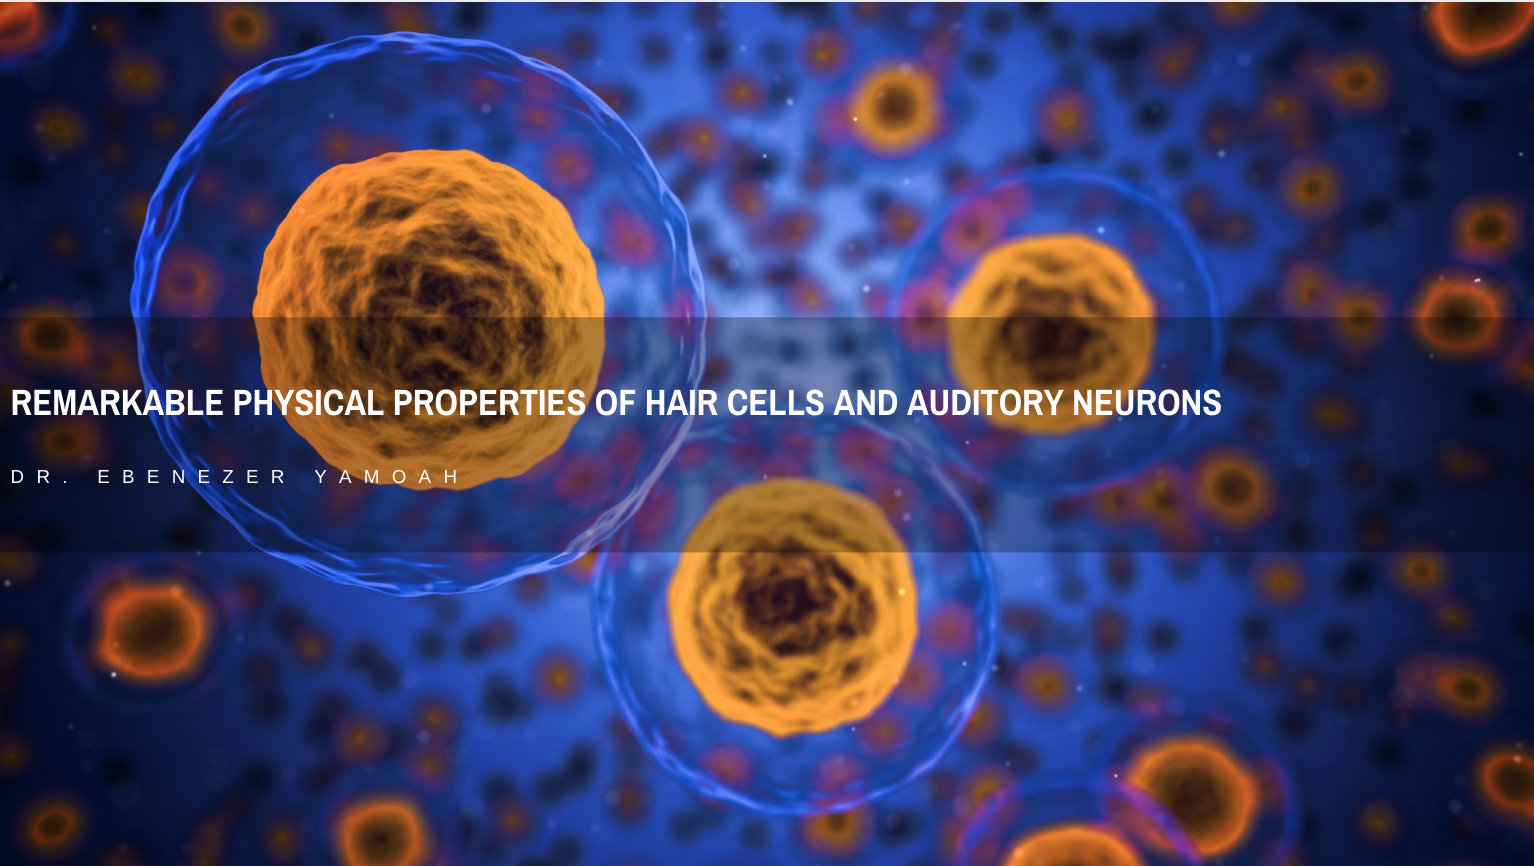 Dr. Ebenezer Yamoah: Remarkable Physical Properties of Hair Cells and Auditory Neurons